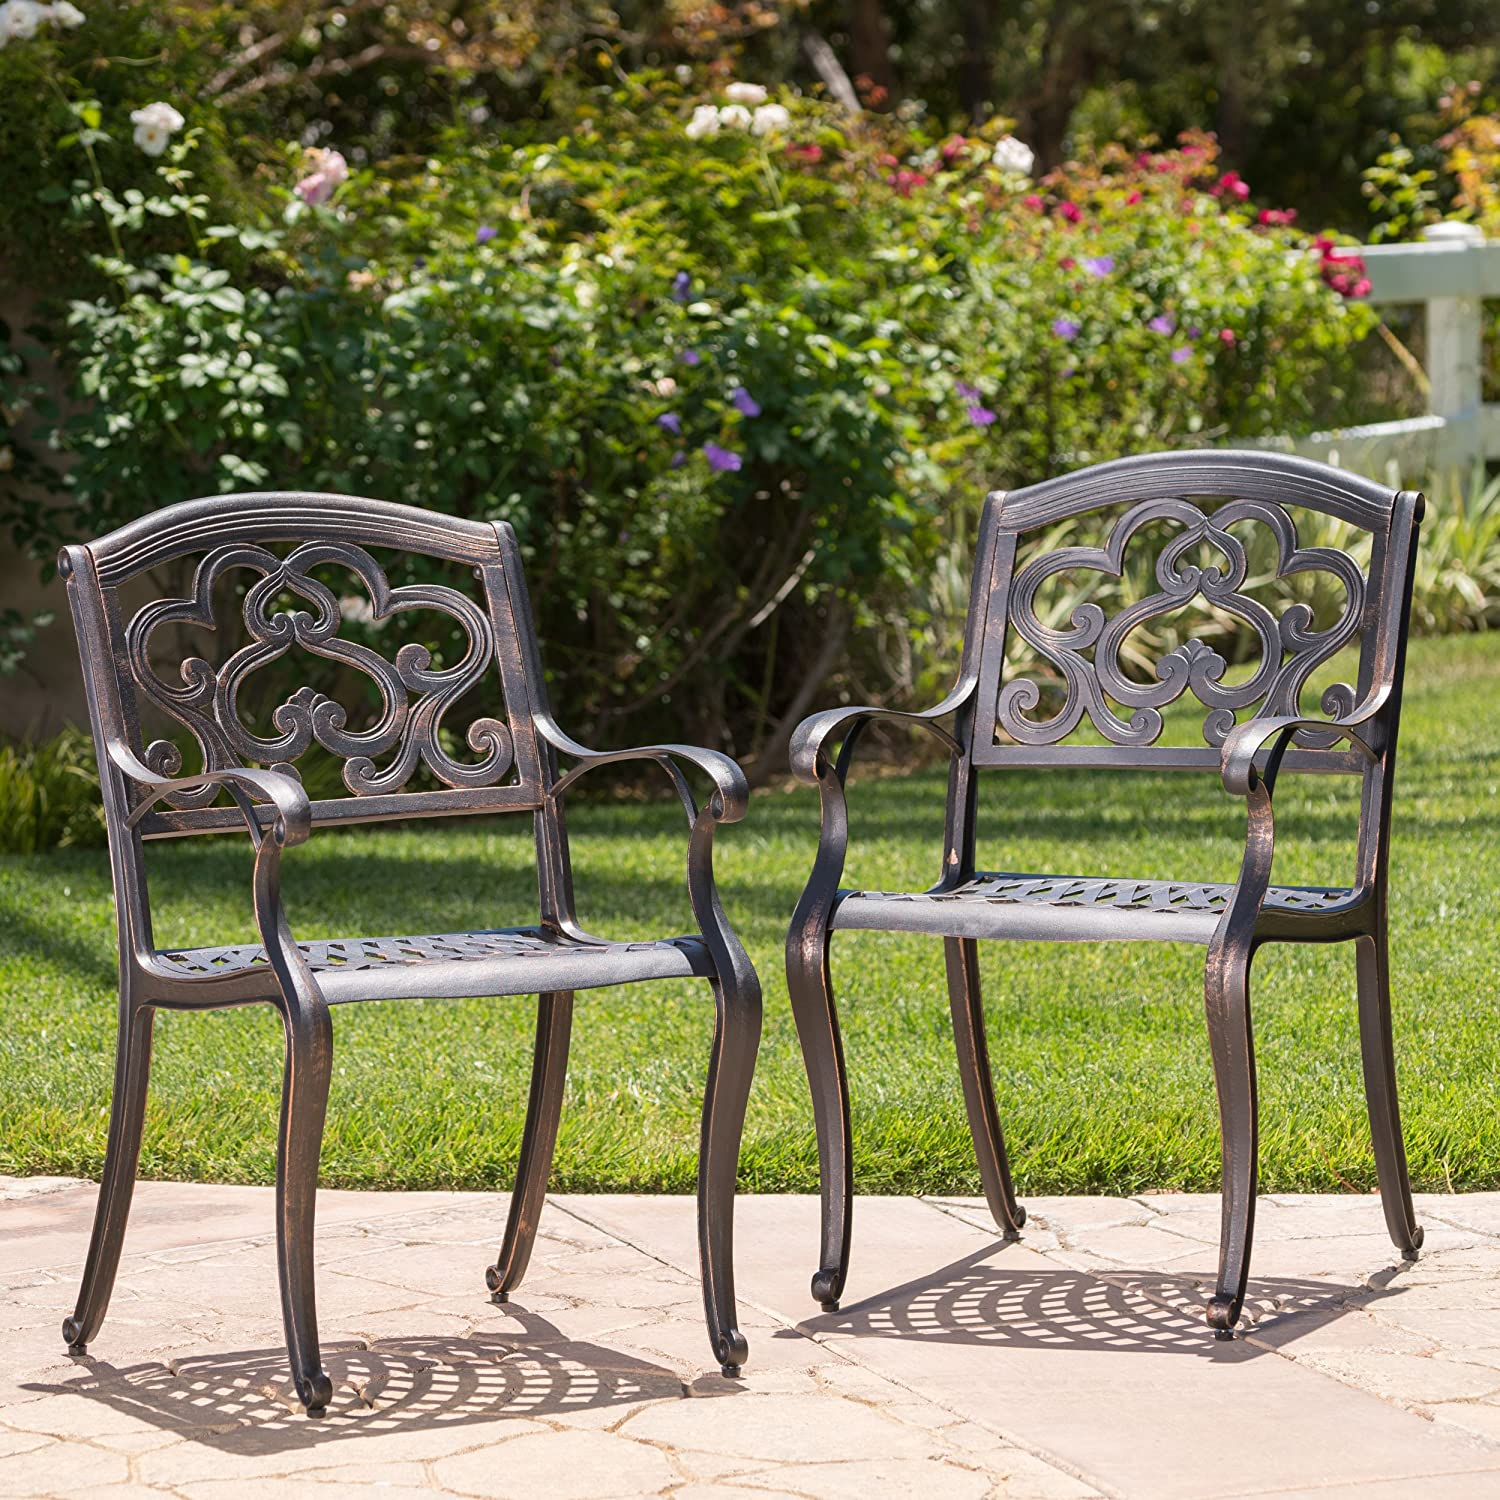 Christopher Knight Home Austin Outdoor Cast Aluminum Dining Chairs, 2-Pcs Set, Shiny Copper : Garden & Outdoor